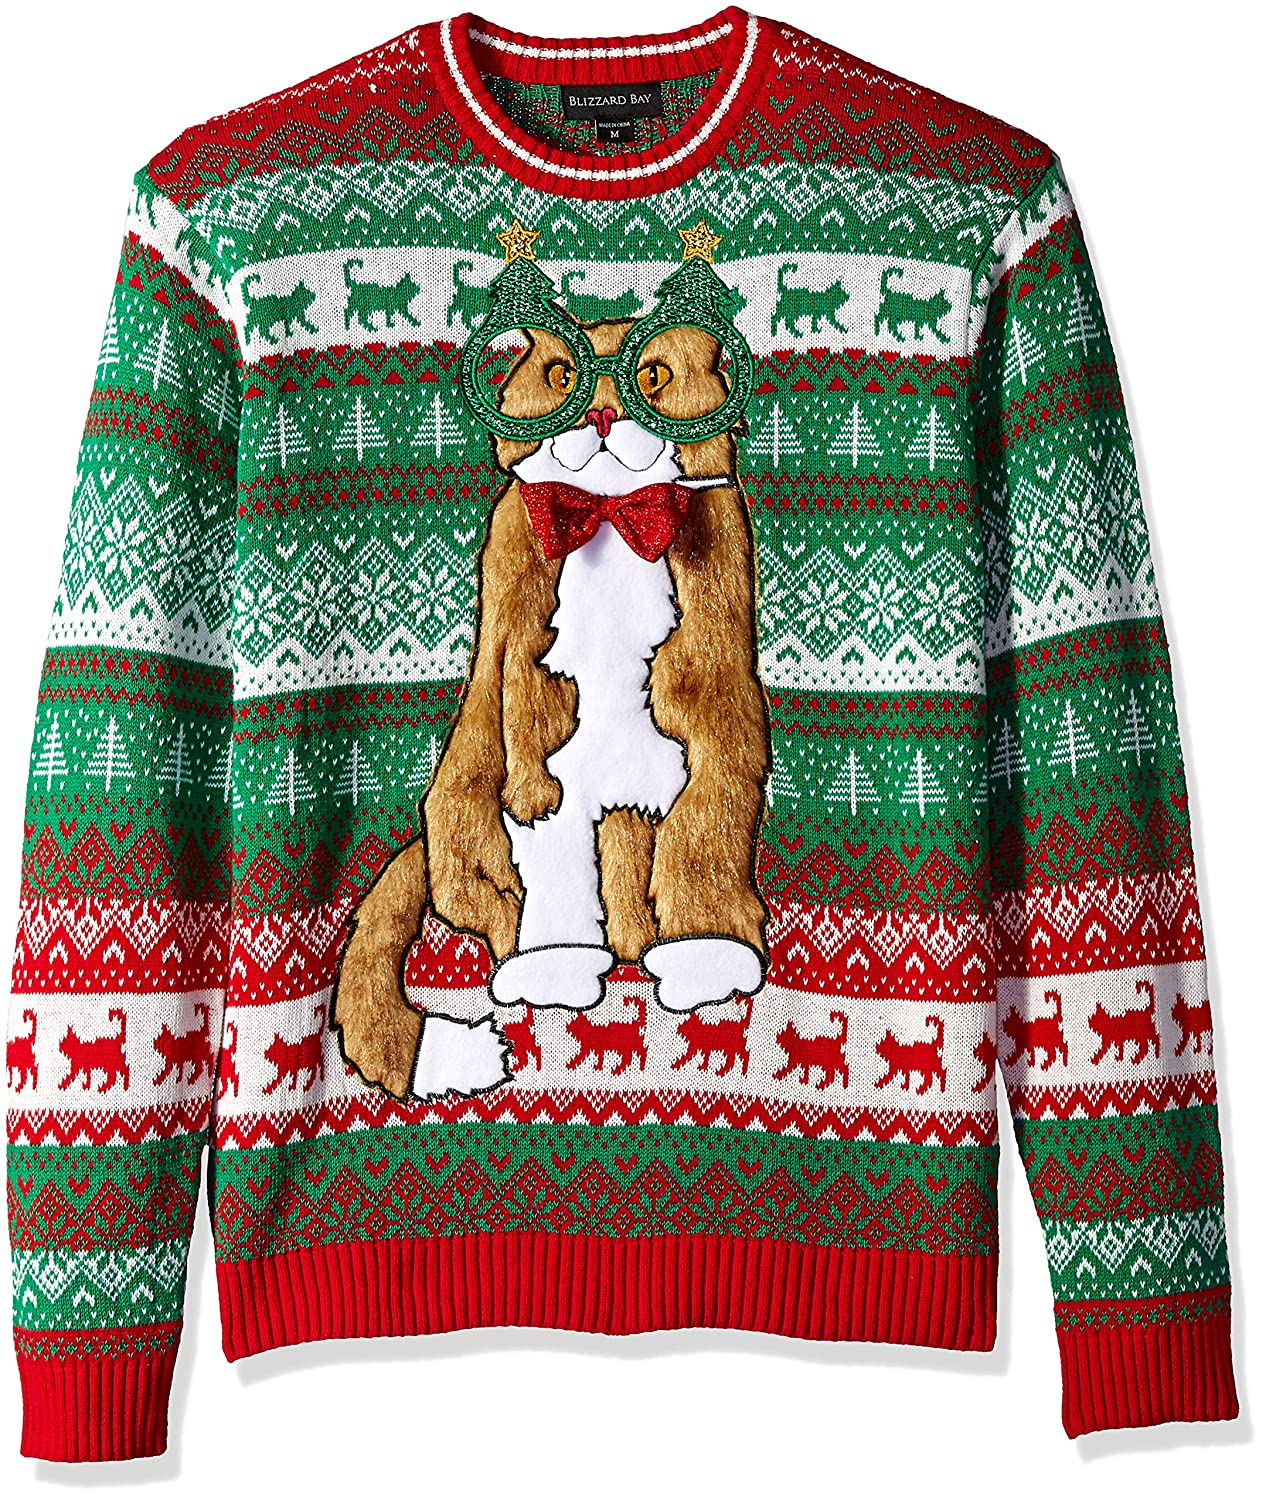 Blizzard Bay Mens Decked Out Kitty Ugly Christmas Sweater